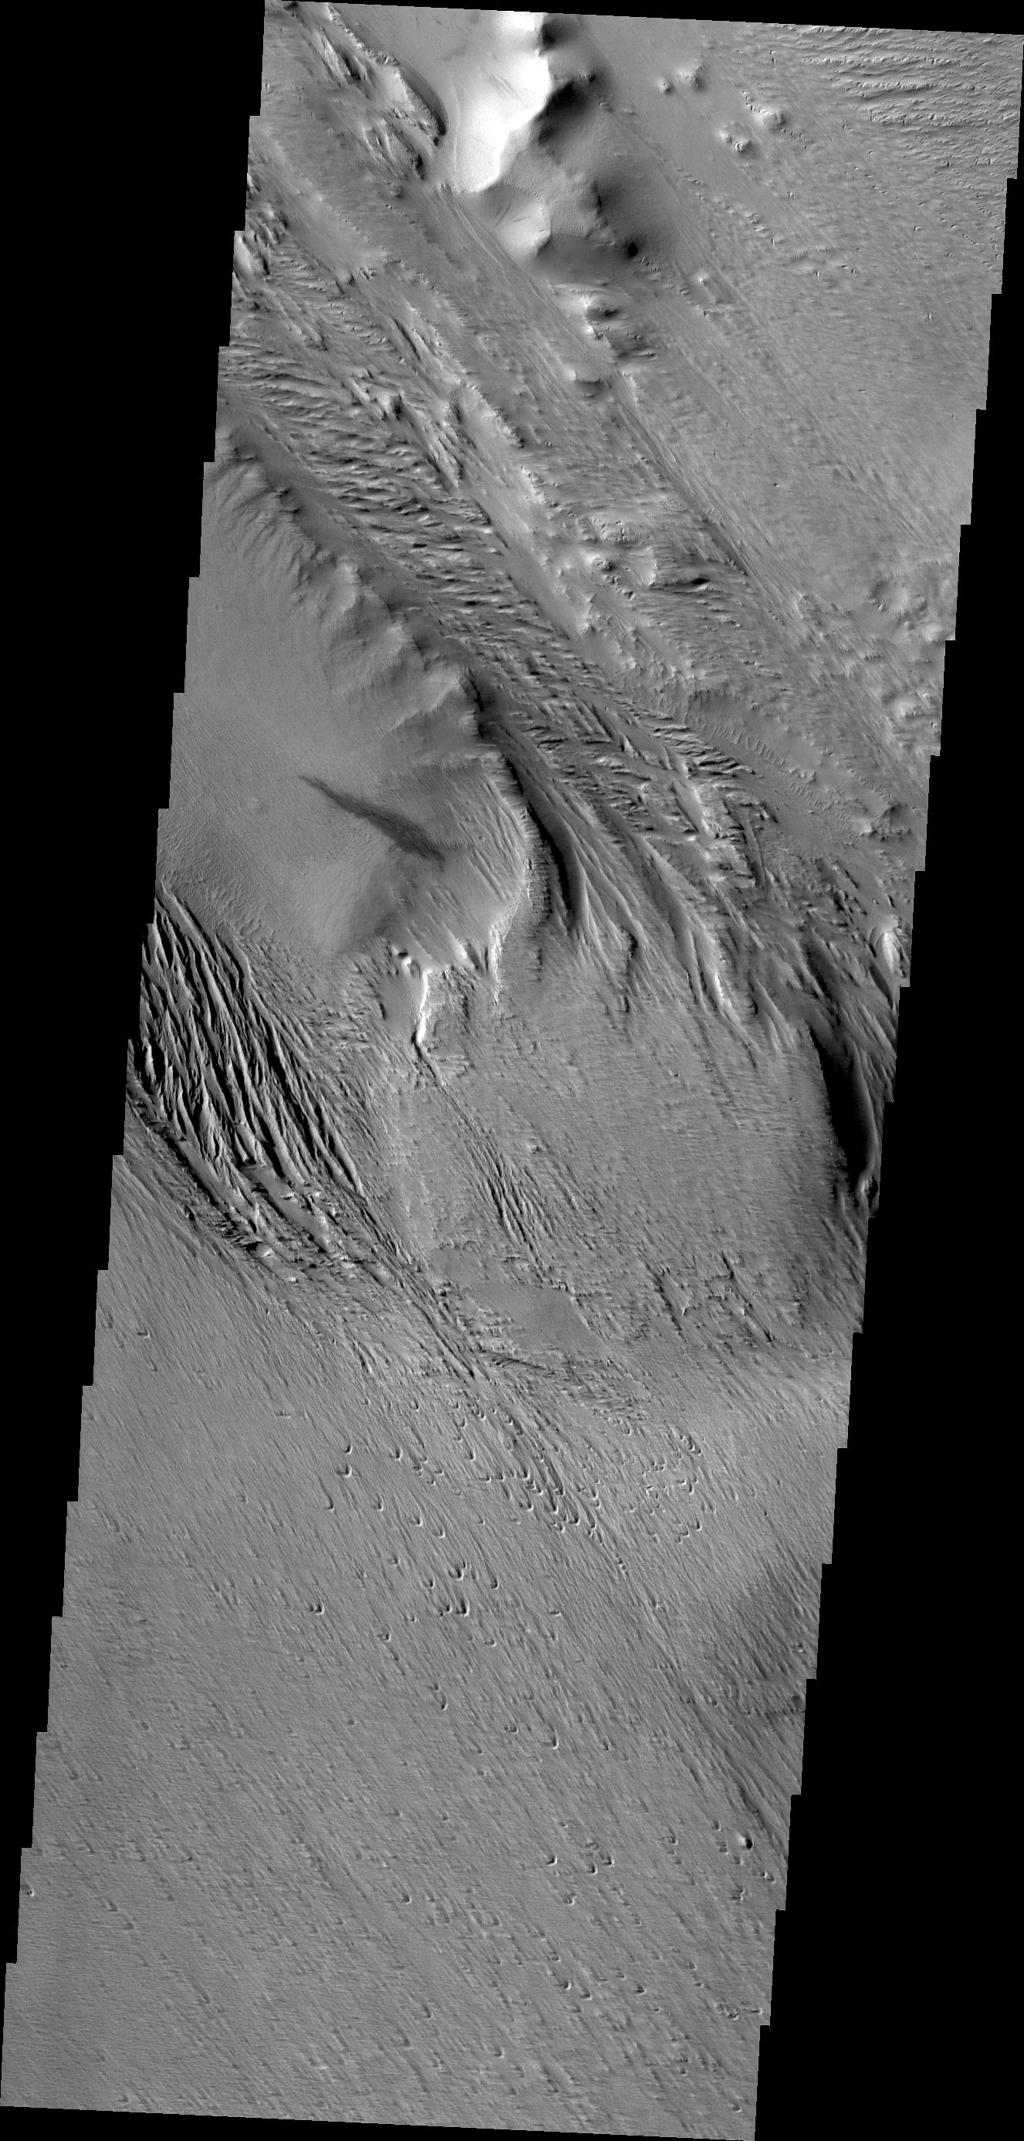 NASA's 2001 Mars Odyssey captured this region of Mars which has been eroded by the wind. Linear hills called yardangs indicate the wind direction, which varies in this area of Medusae Fossae.